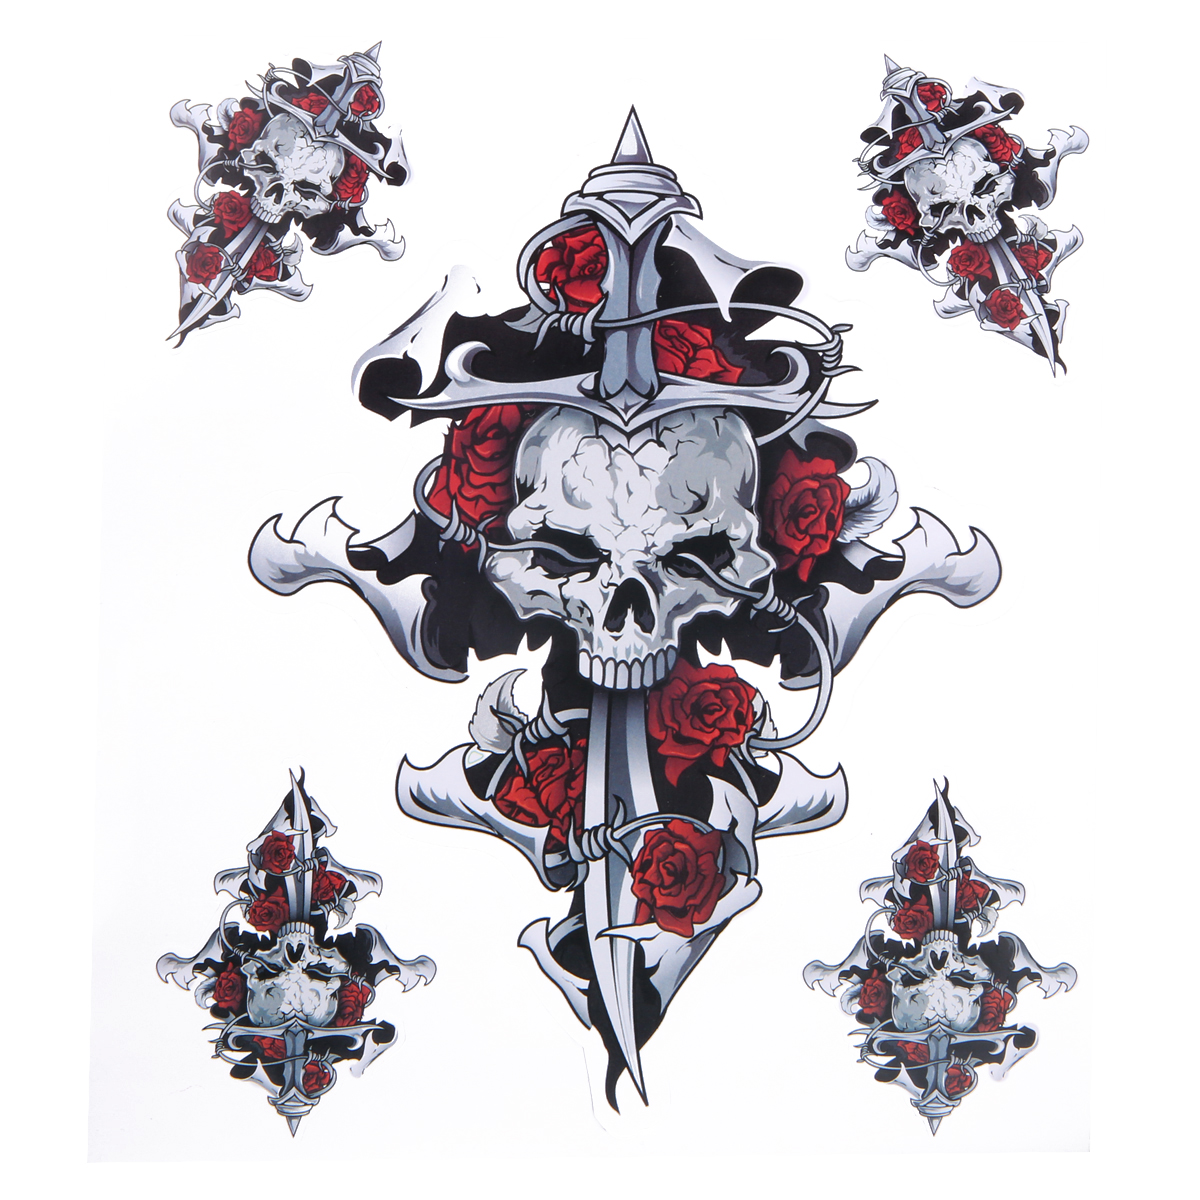 1 Sheet Red Rose Skull Self-adhesive Sticker Funny Decal Motorcycle Decoration For Auto Motorbike Motocross Scooter